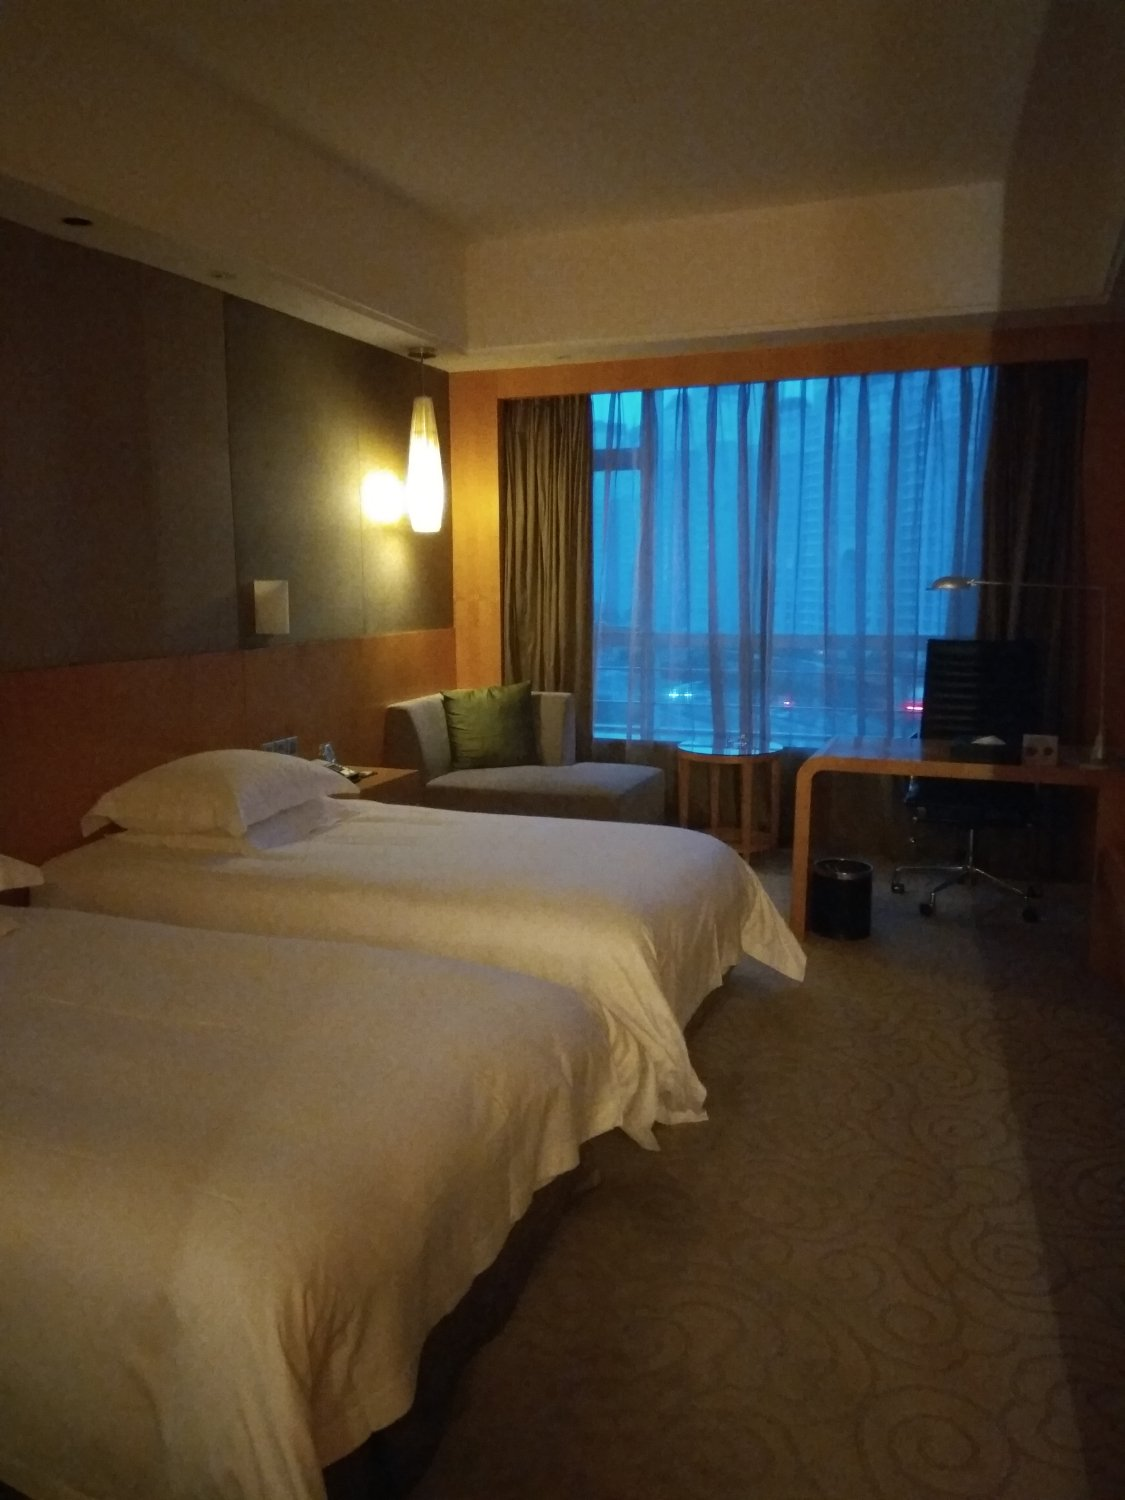 TaiZhou YaoDa International Hotel